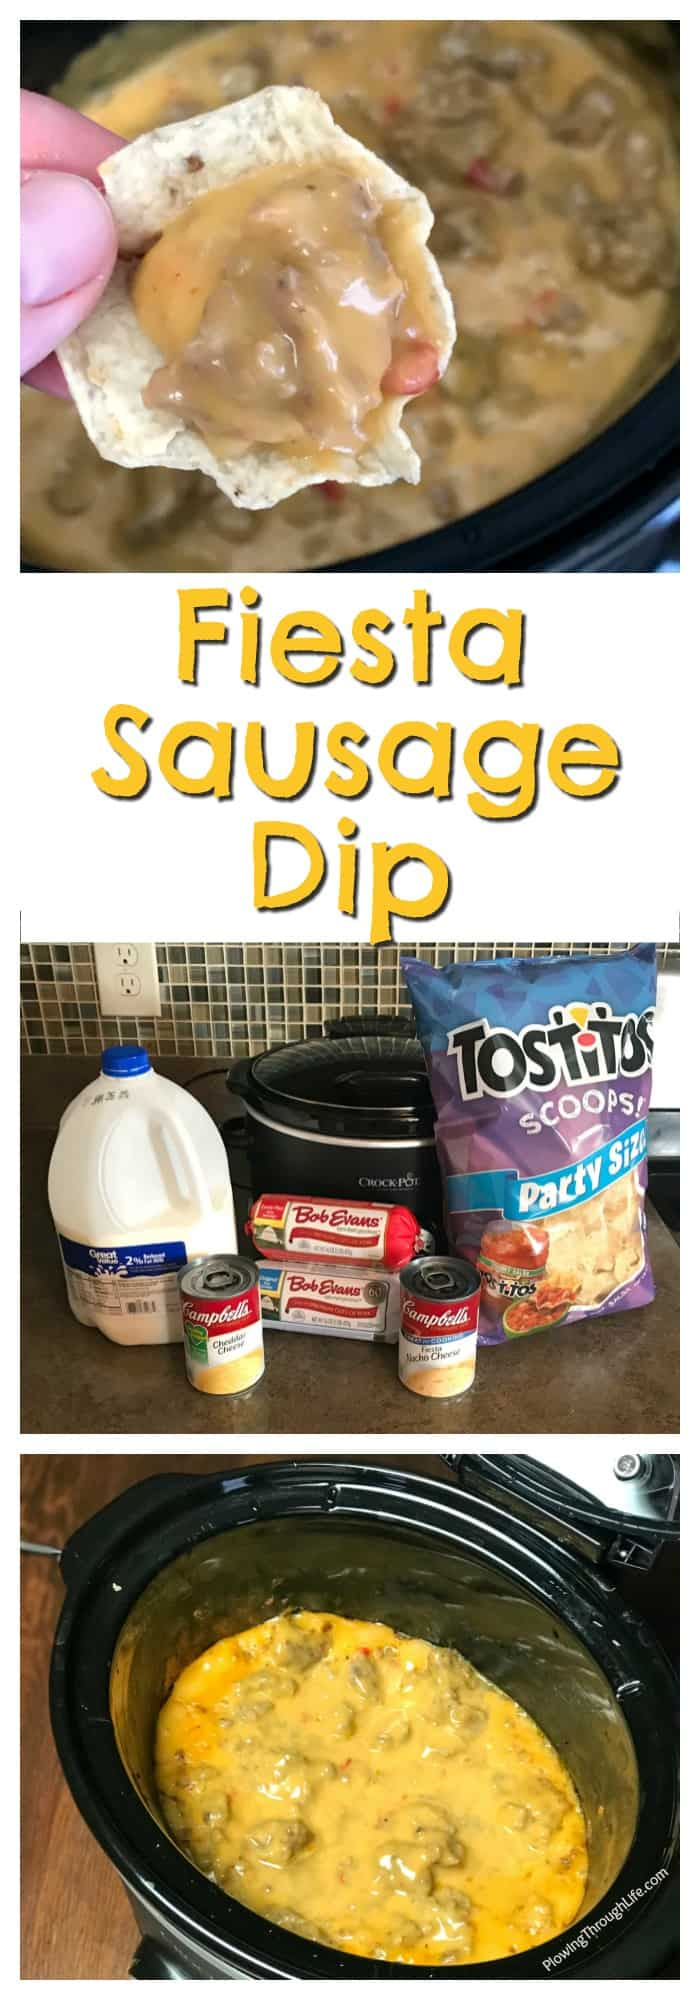 Do you want to have the best sausage dip at the party?  This crock pot Fiesta Sausage Dip has the perfect amount of zest in the meaty and cheesy combination.  #crockpotdip #sausage